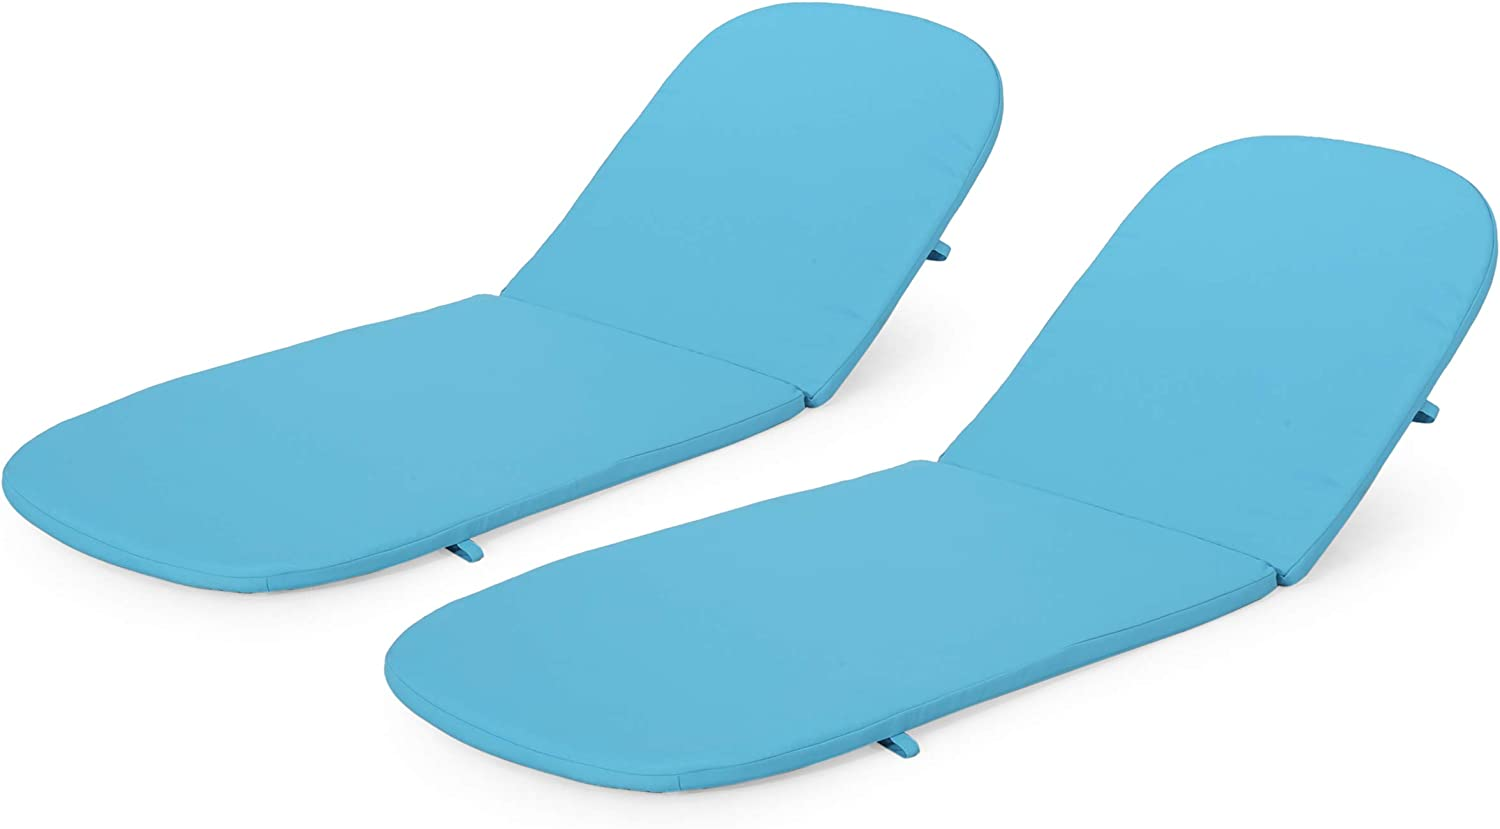 Caspar Outdoor Water Resistant Chaise Lounge Cushions (Set of 2), Blue